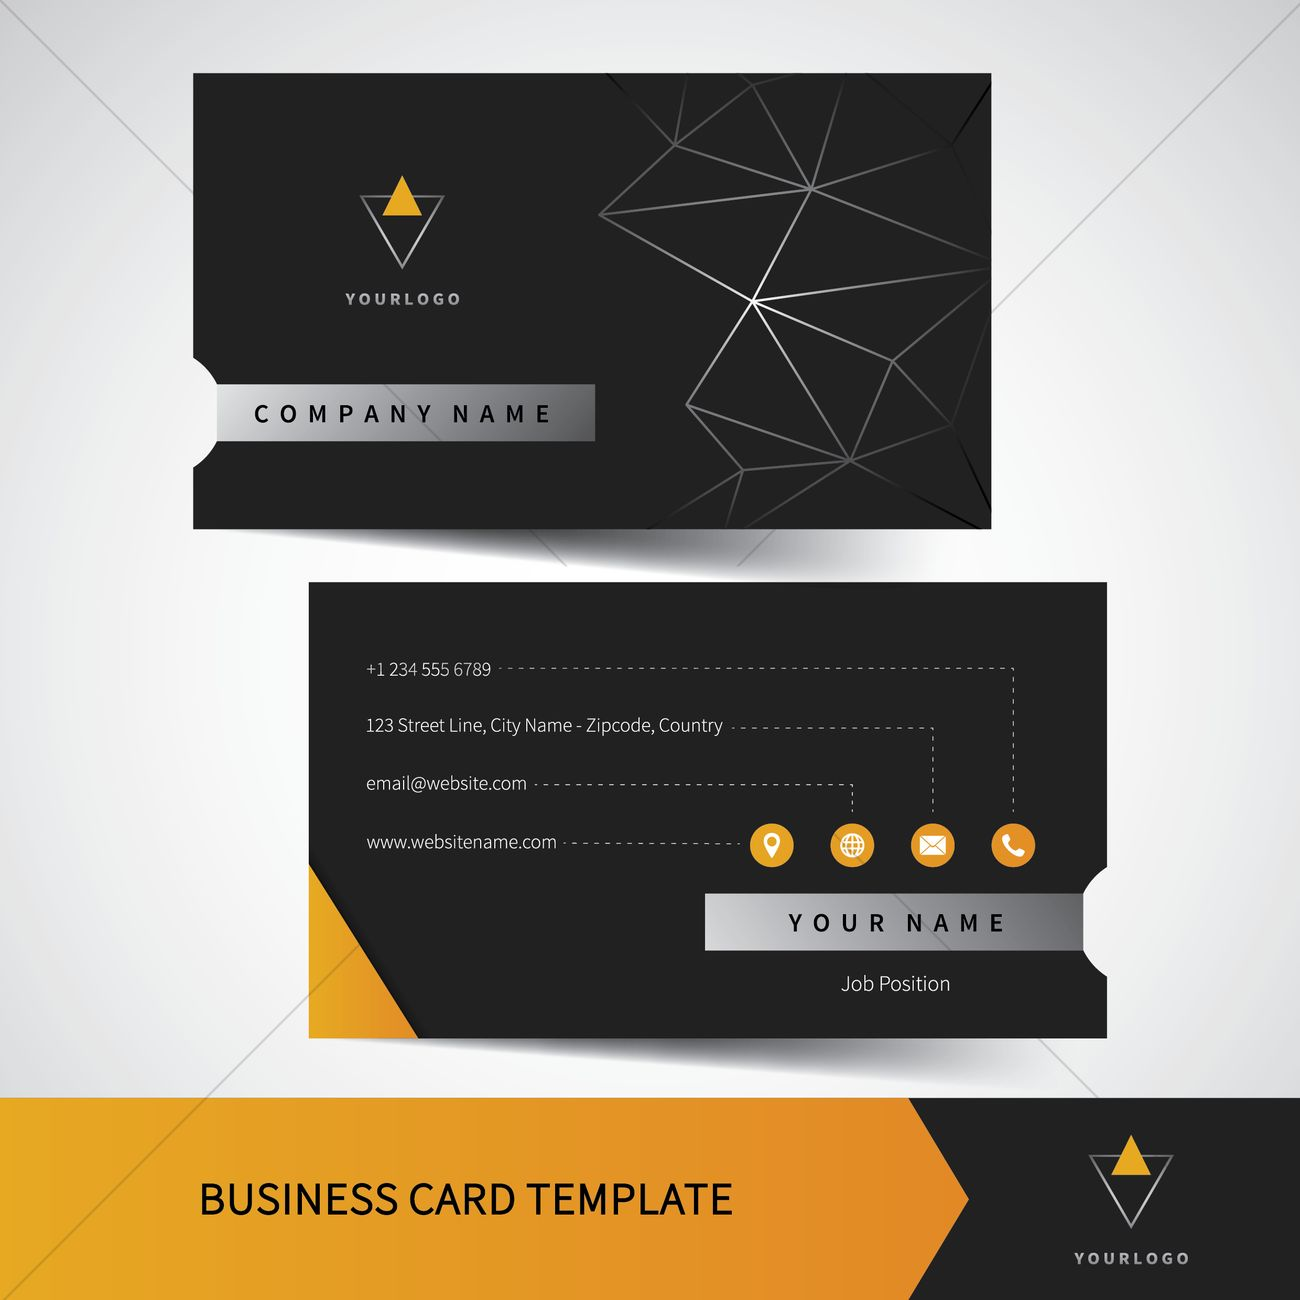 Business card template vector image 1822199 stockunlimited business card template vector graphic accmission Gallery